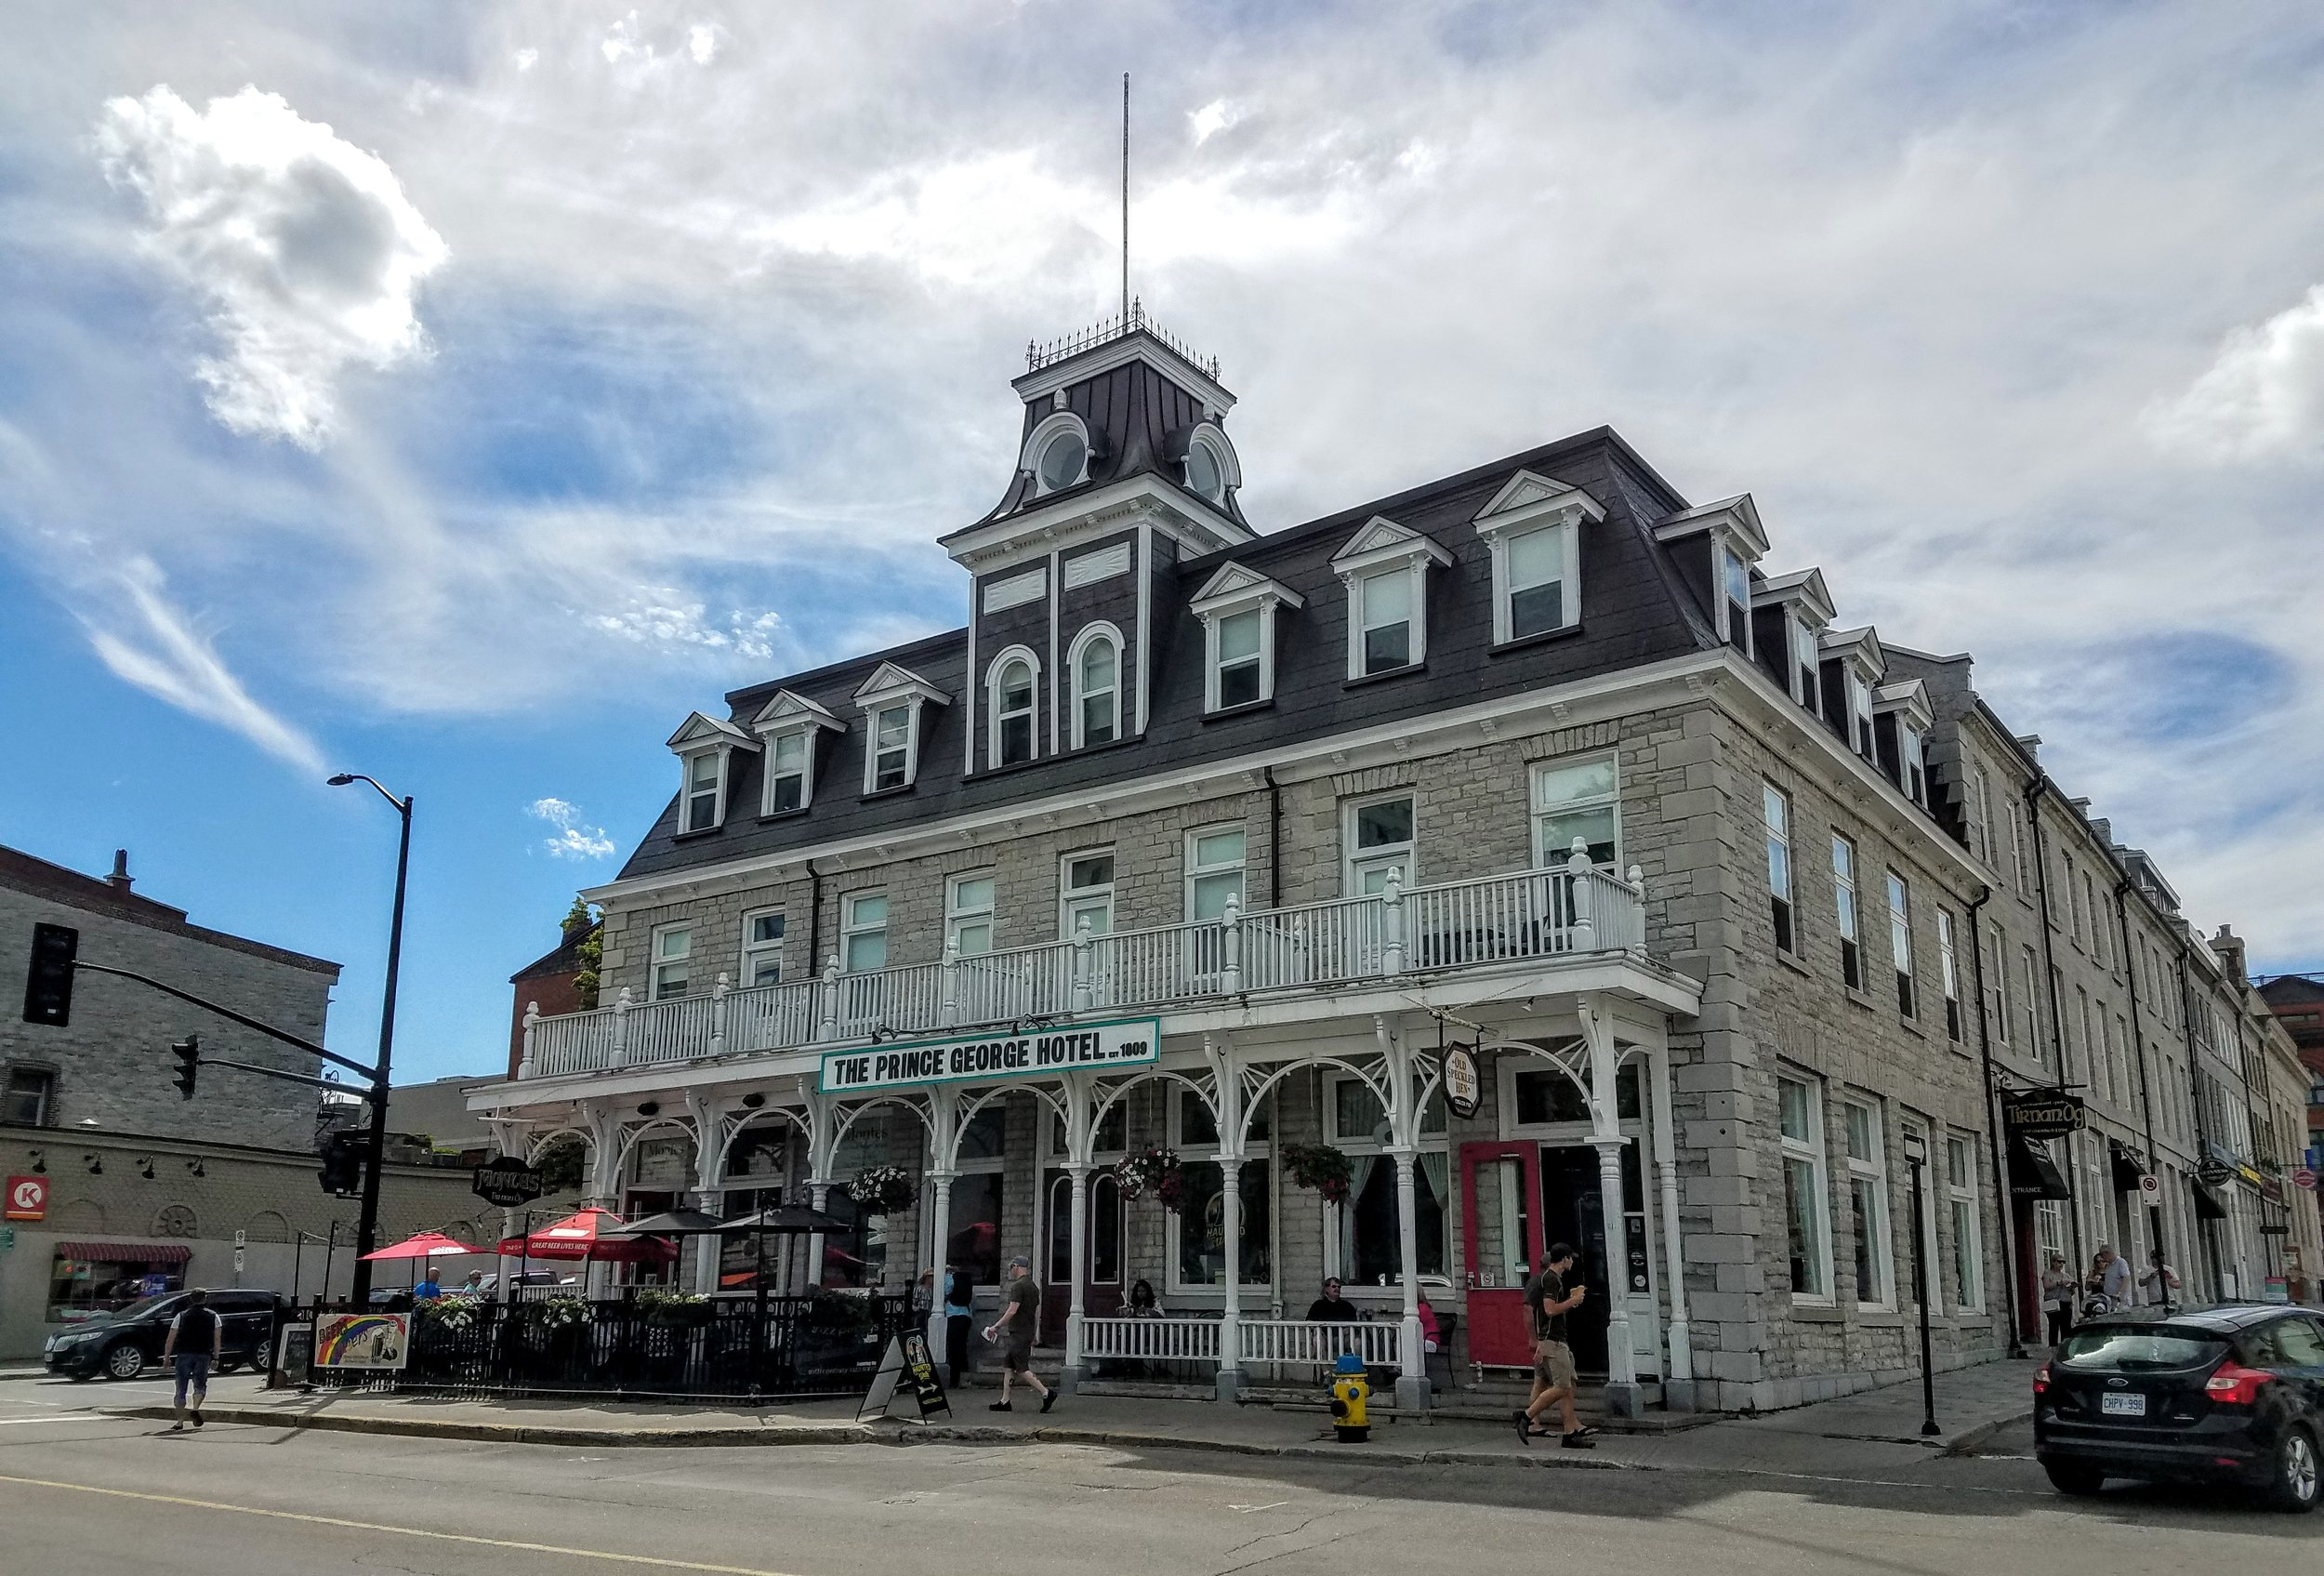 The Prince George Hotel in Kingston